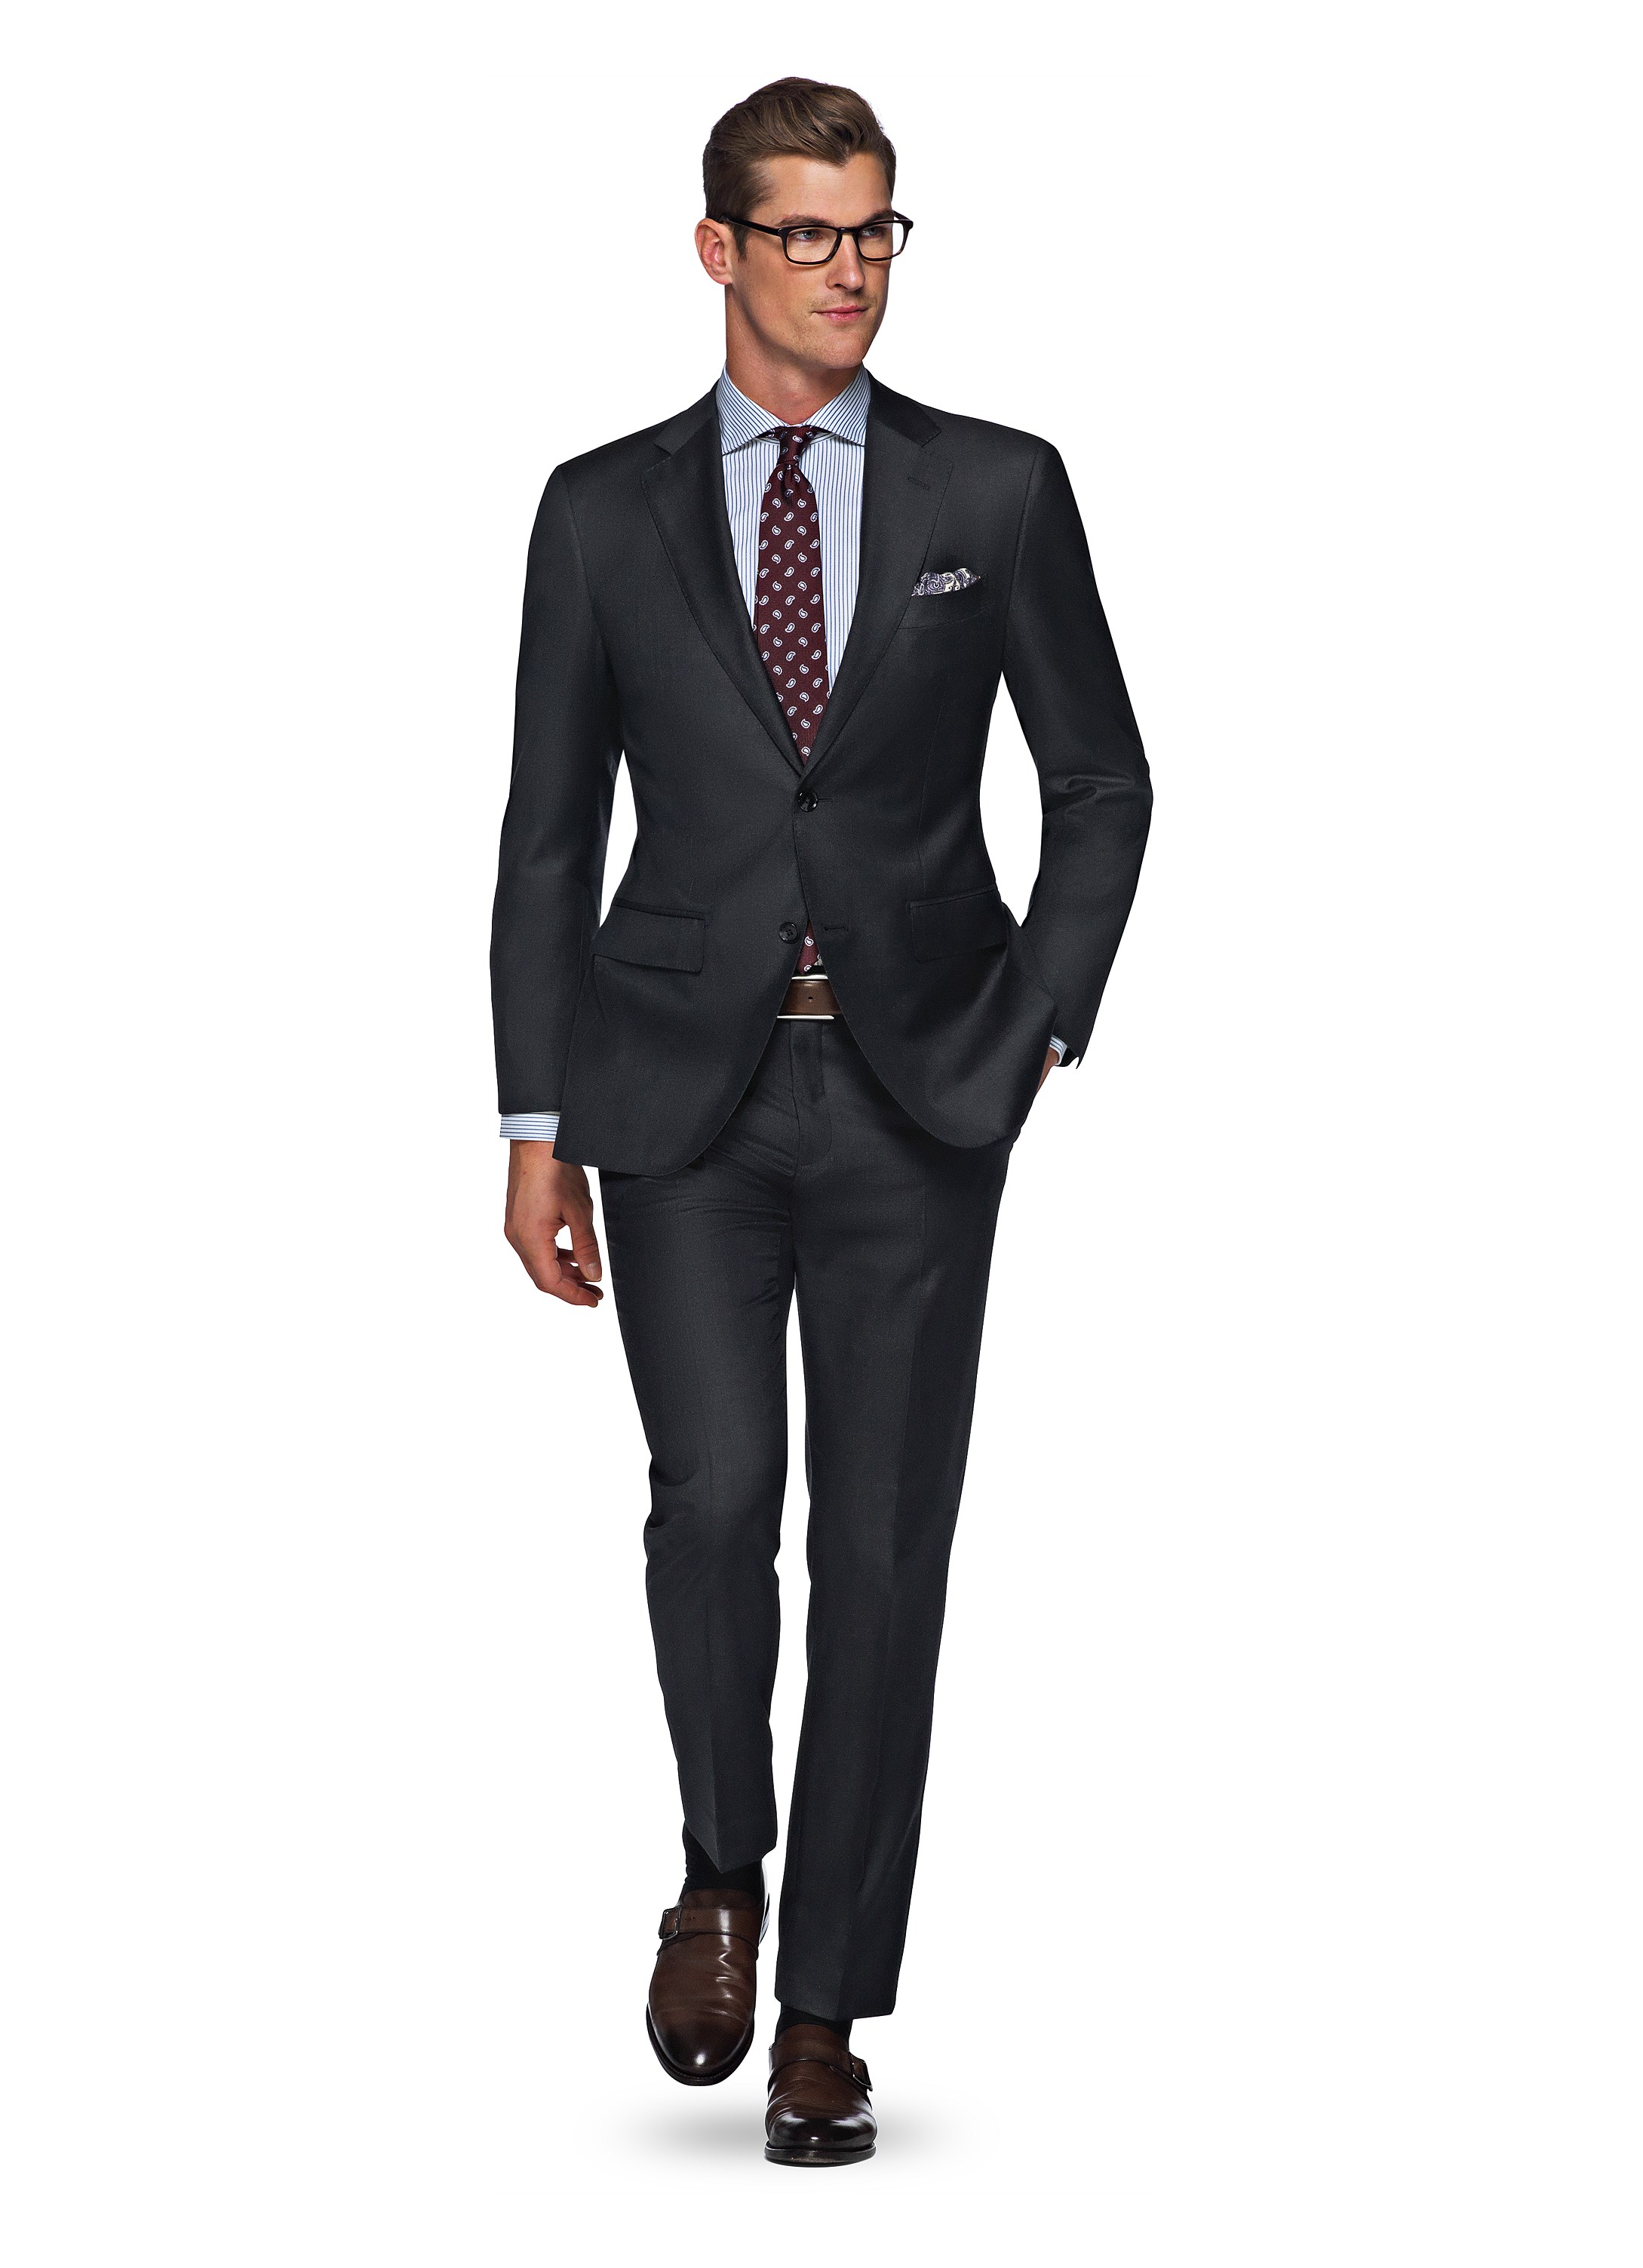 Suits_Dark_Grey_Plain_Napoli_P2525_Suitsupply_Online_Store_1.jpg